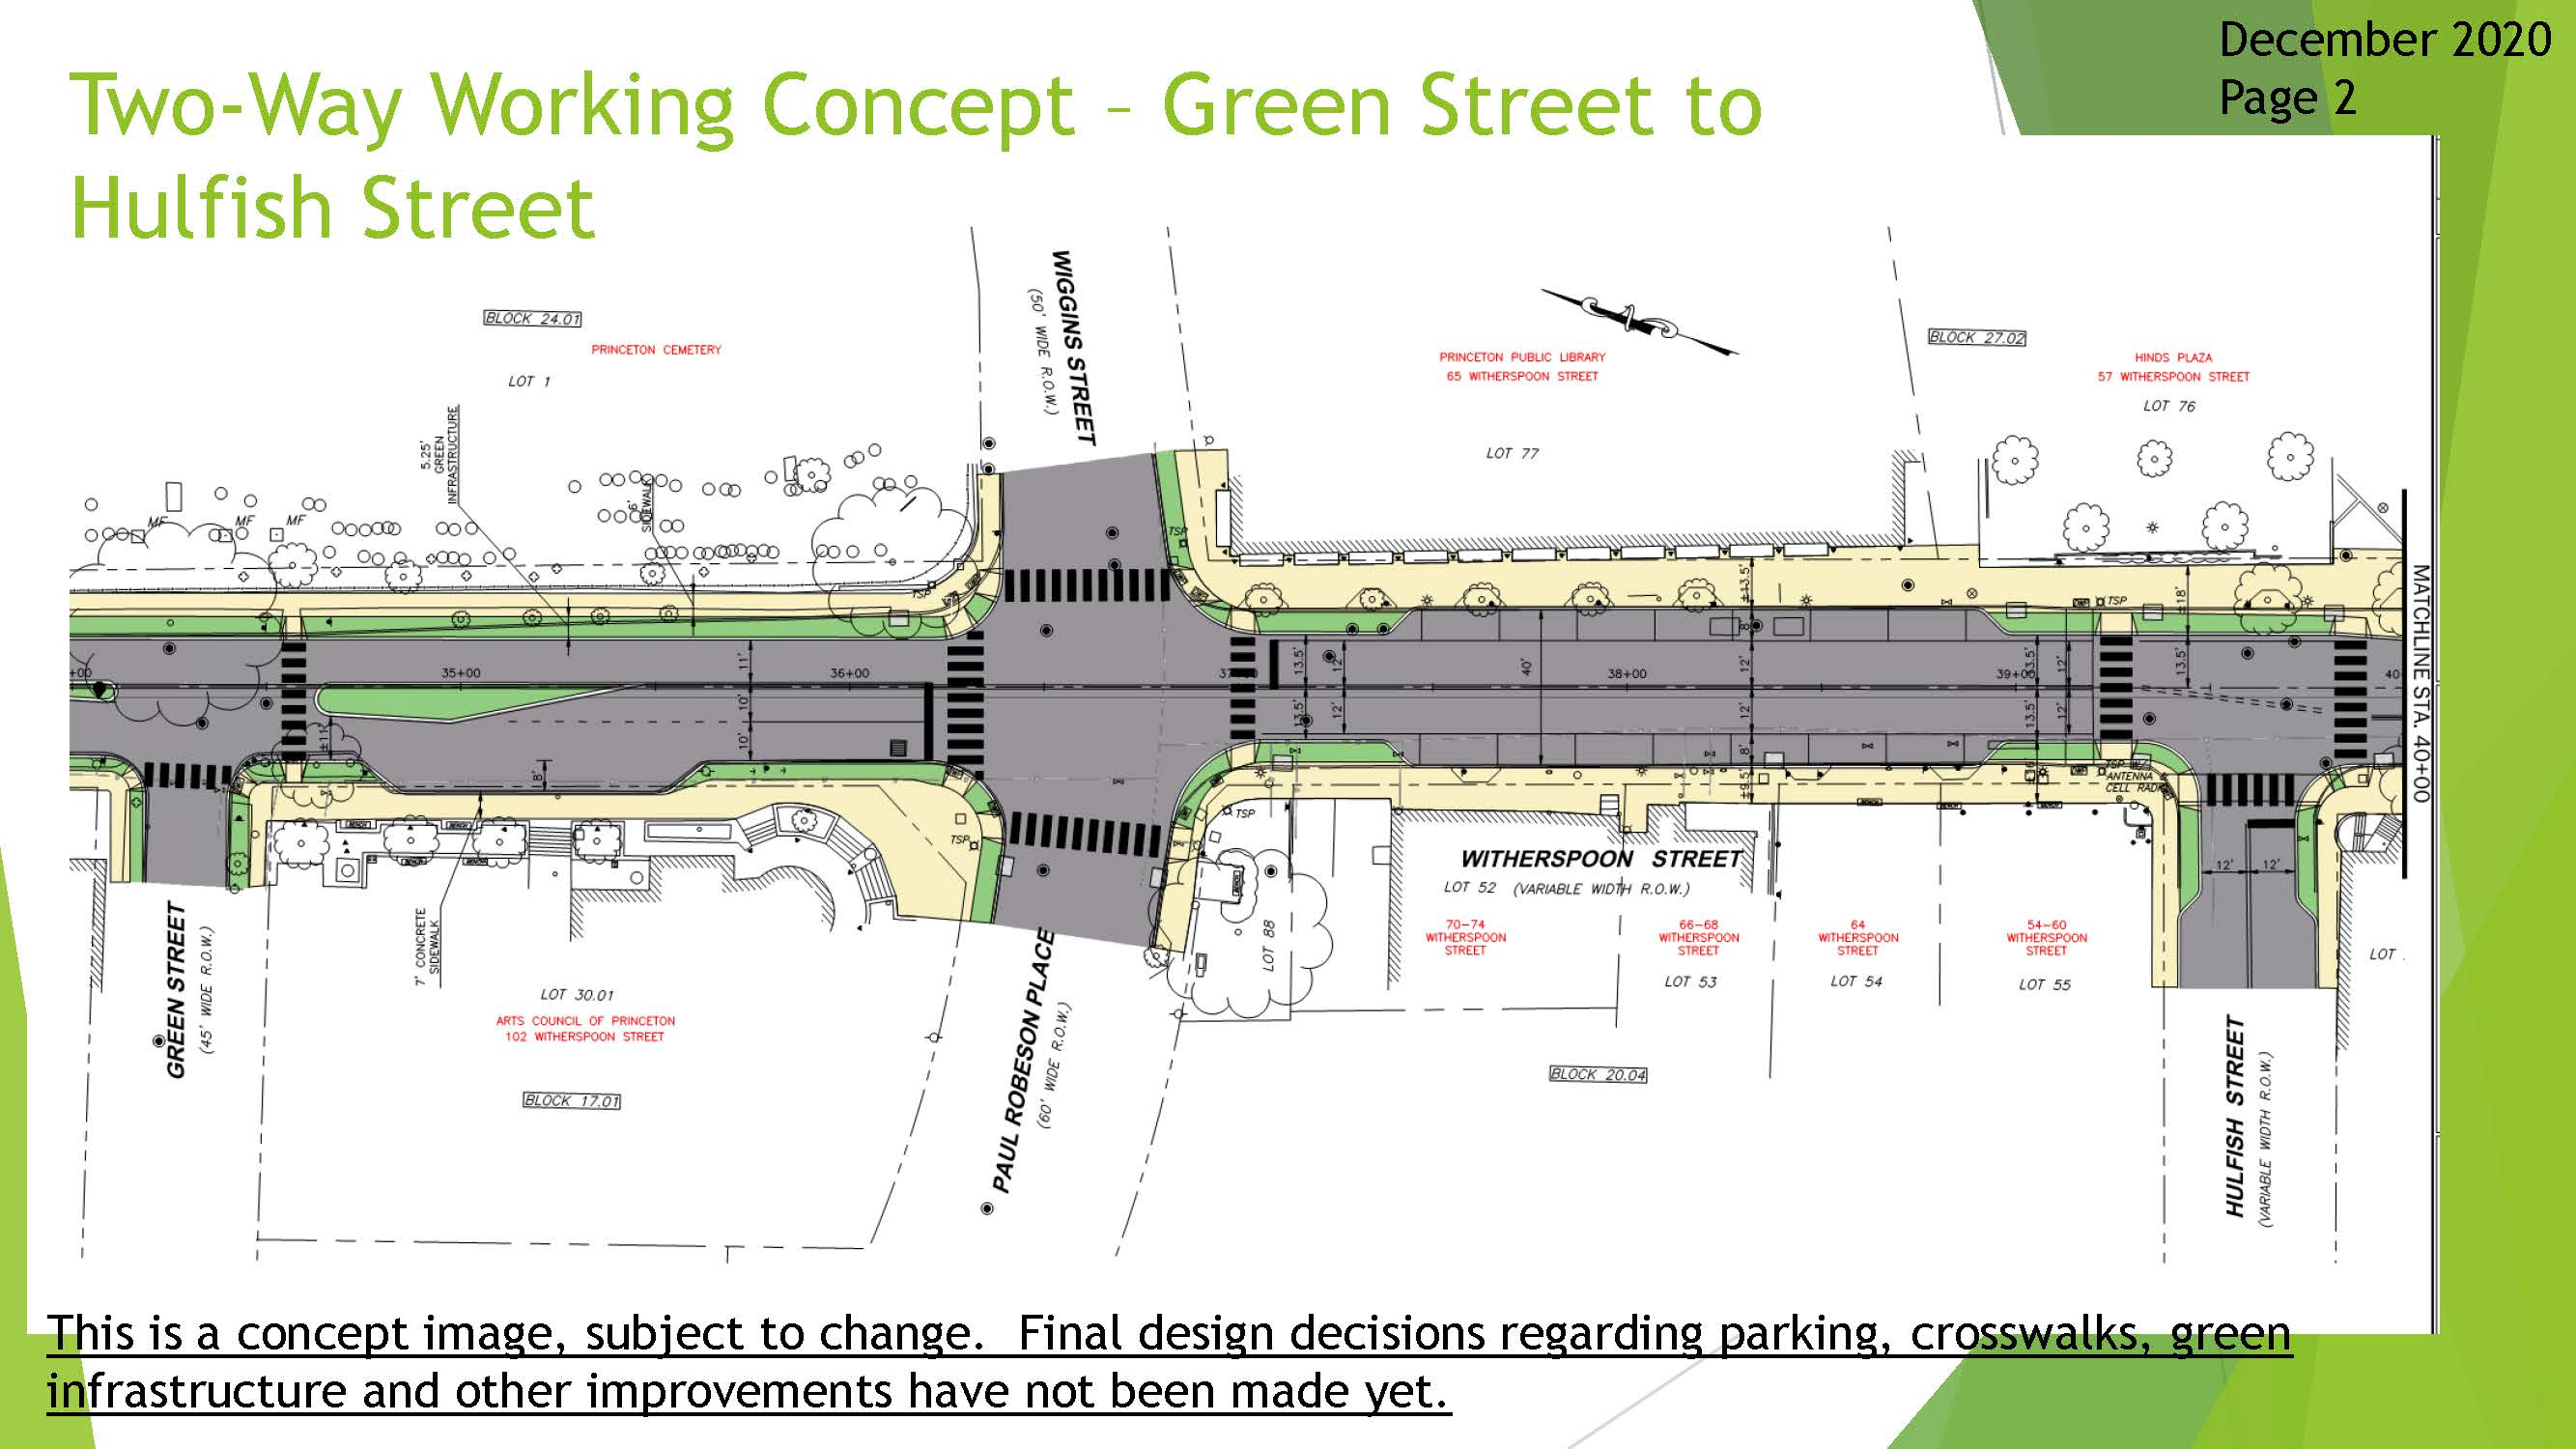 Two way Working Concept Drawing - Green Street to Hulfish Street